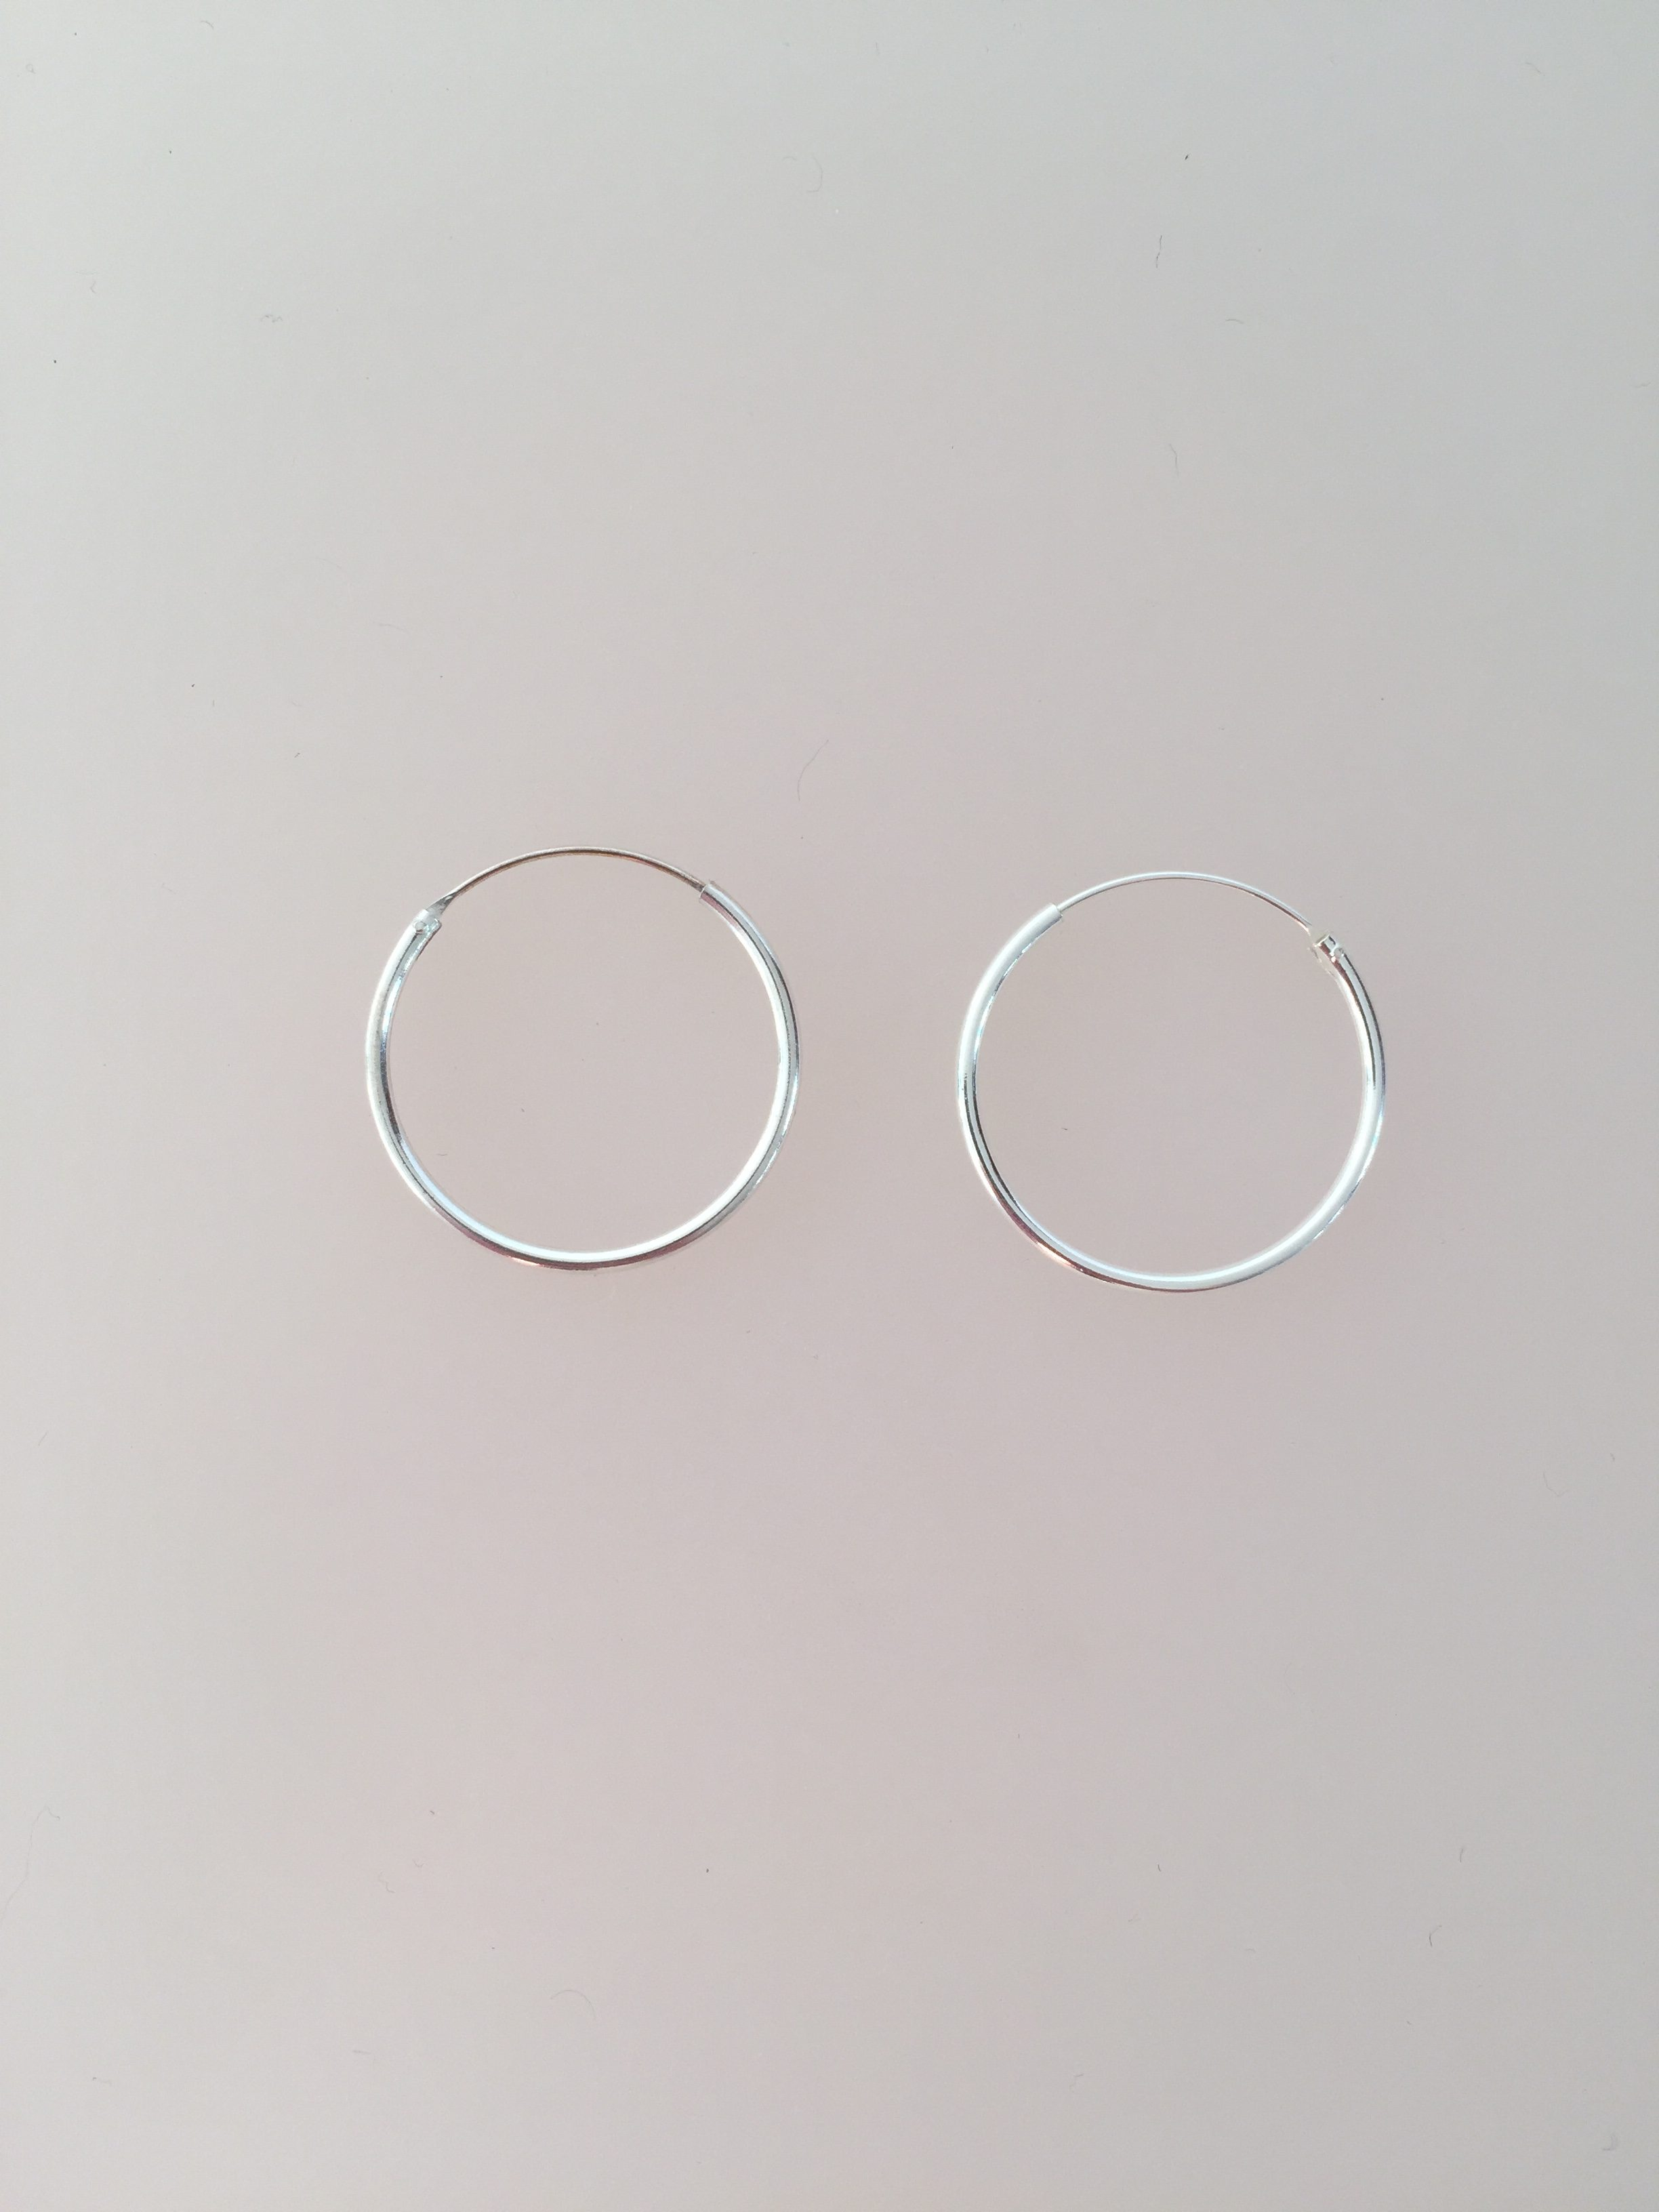 cd3fe466801 Ø 25 mm Creoler sølv - glatte hoops i 2mm tykkelse